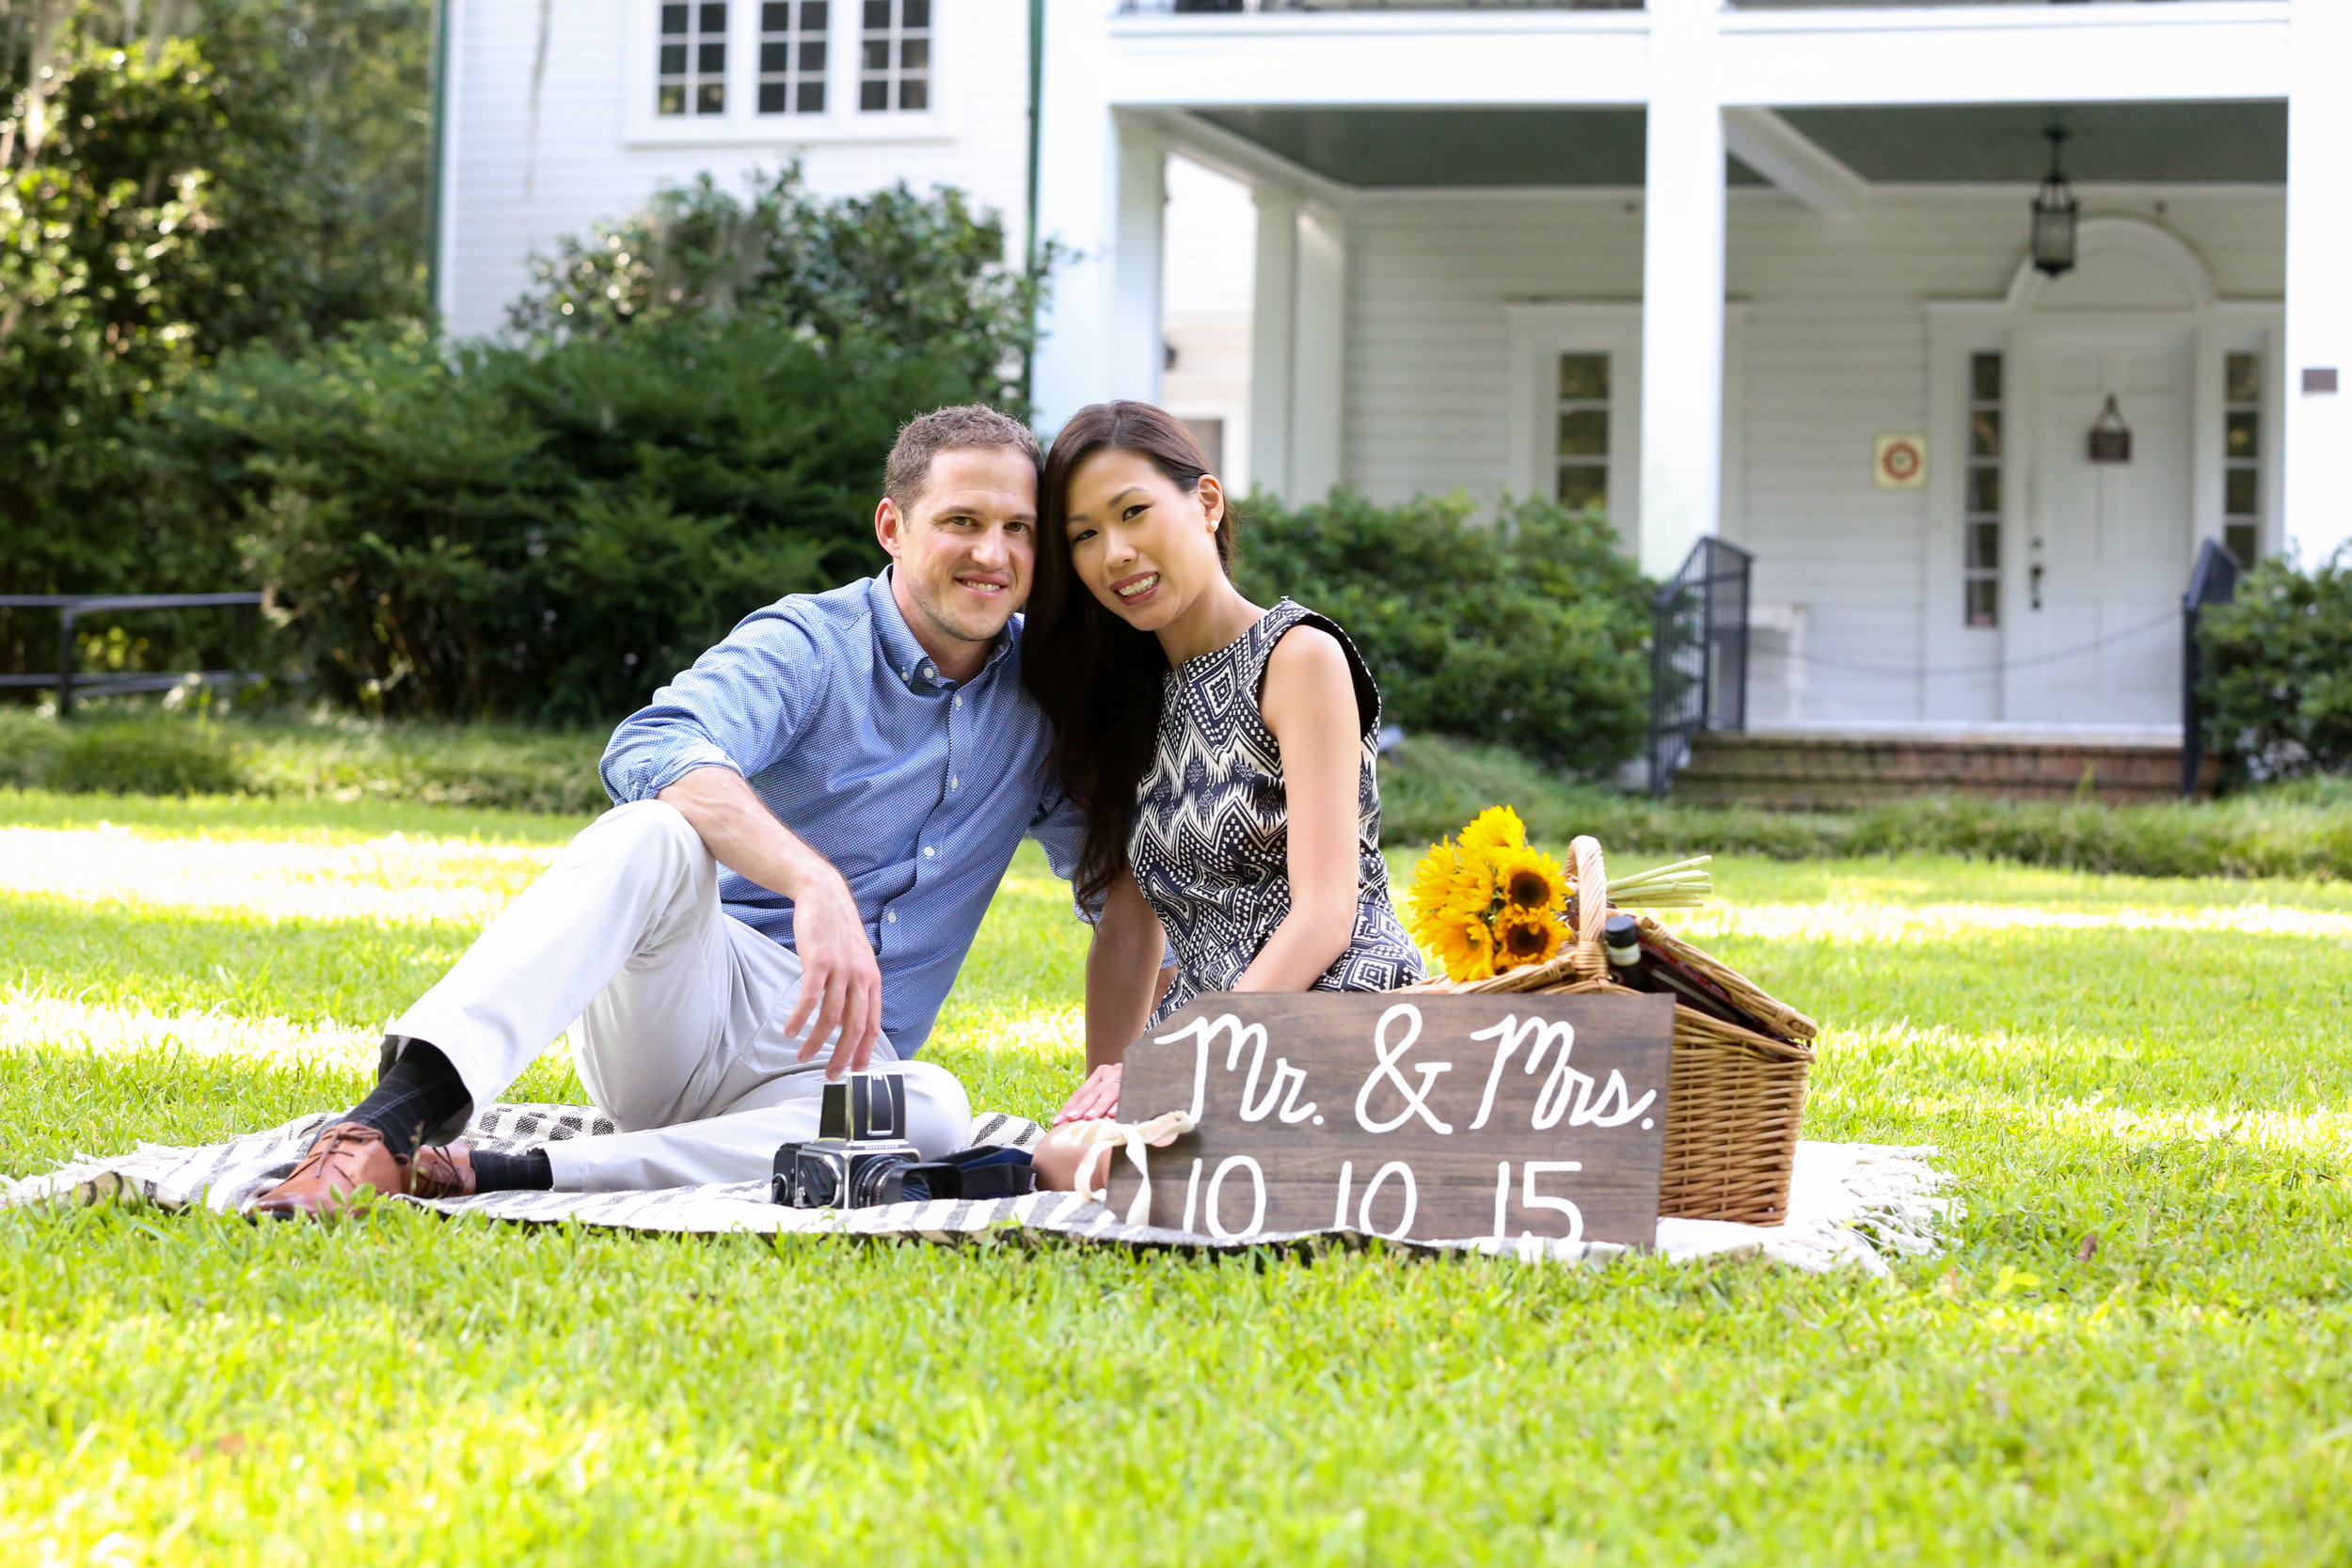 orlando-wedding-photographer-engagement-session-photography-estate-house.jpg